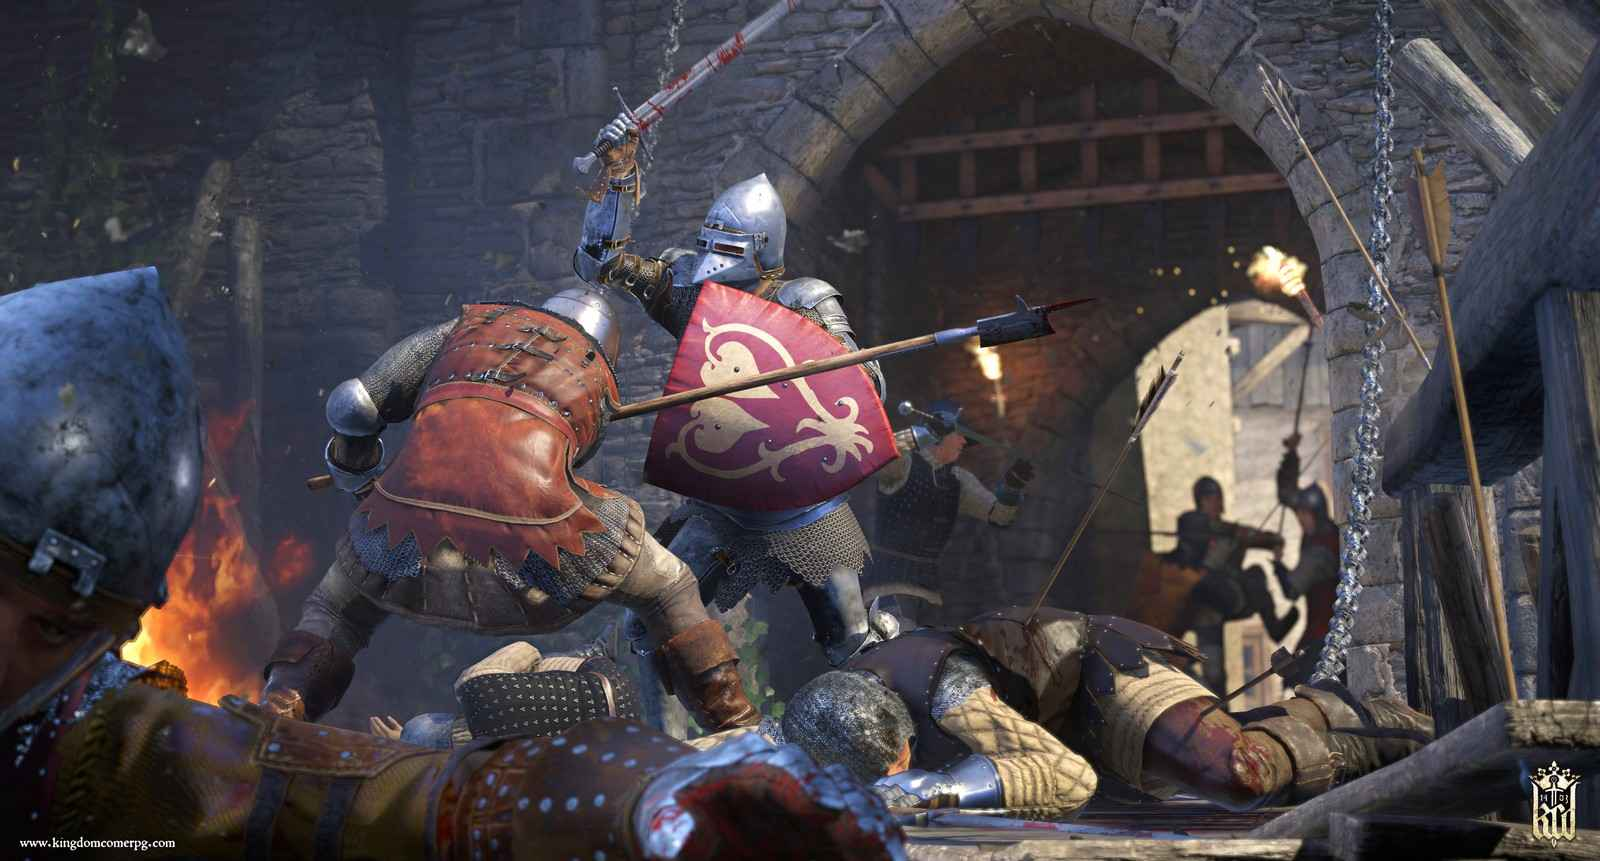 Kingdom Come Deliverance Update 1.6.3 Patch Notes